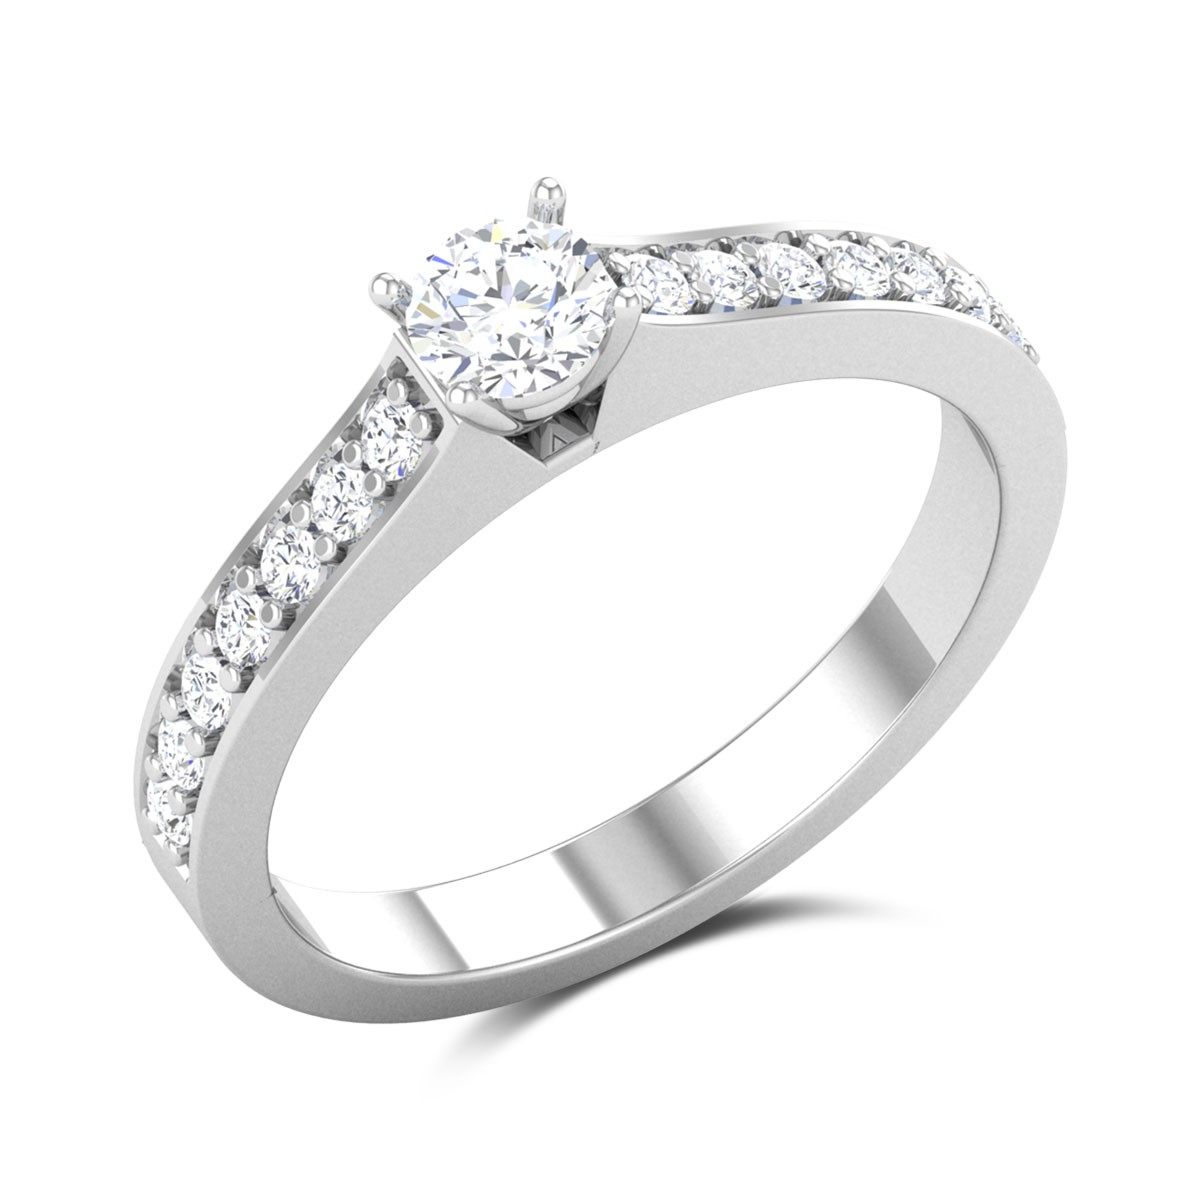 Midnight 4 Prong Solitaire Ring